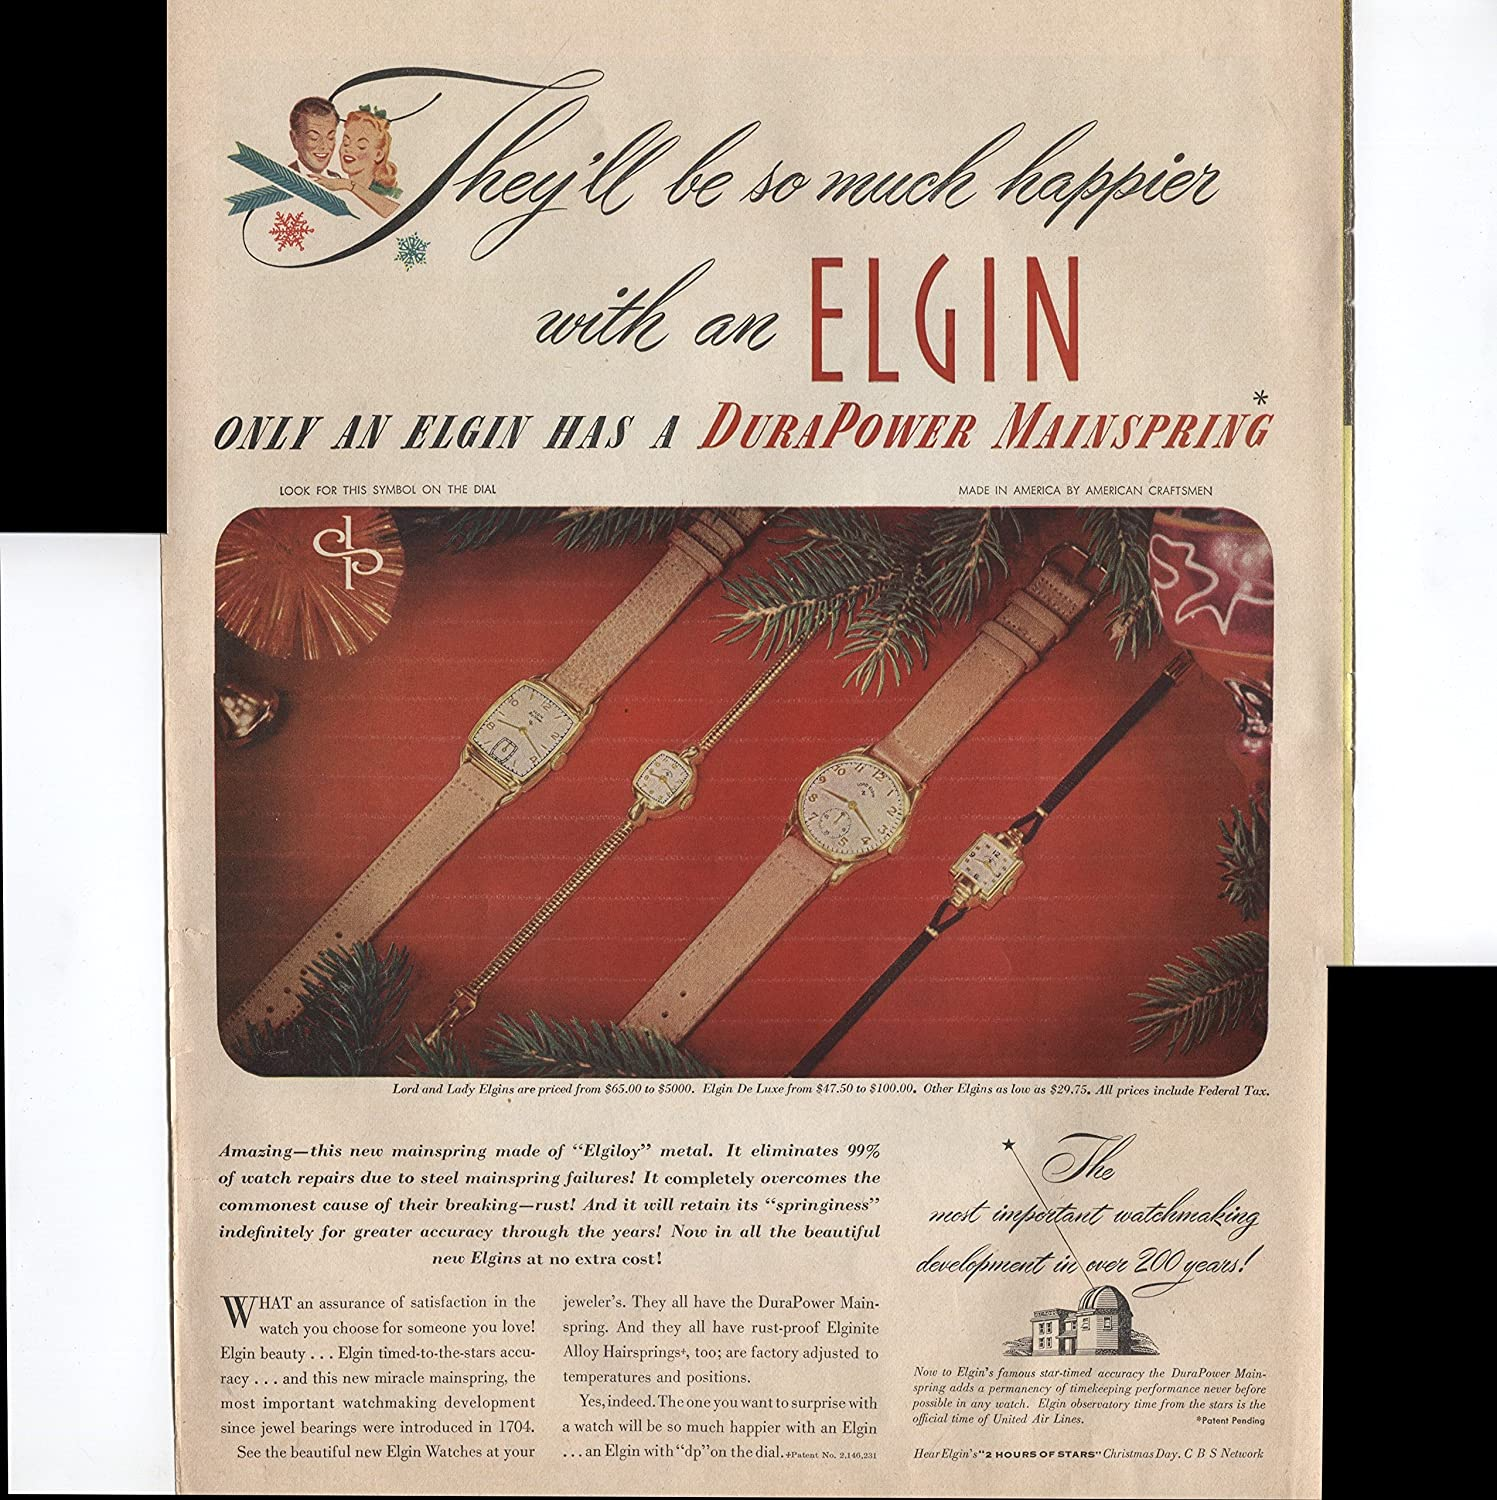 amazoncom elgin watches theyll be so much happier with an elgin only an elgin has a durapower mainspring eliminates watch repairs 1947 vintage antique